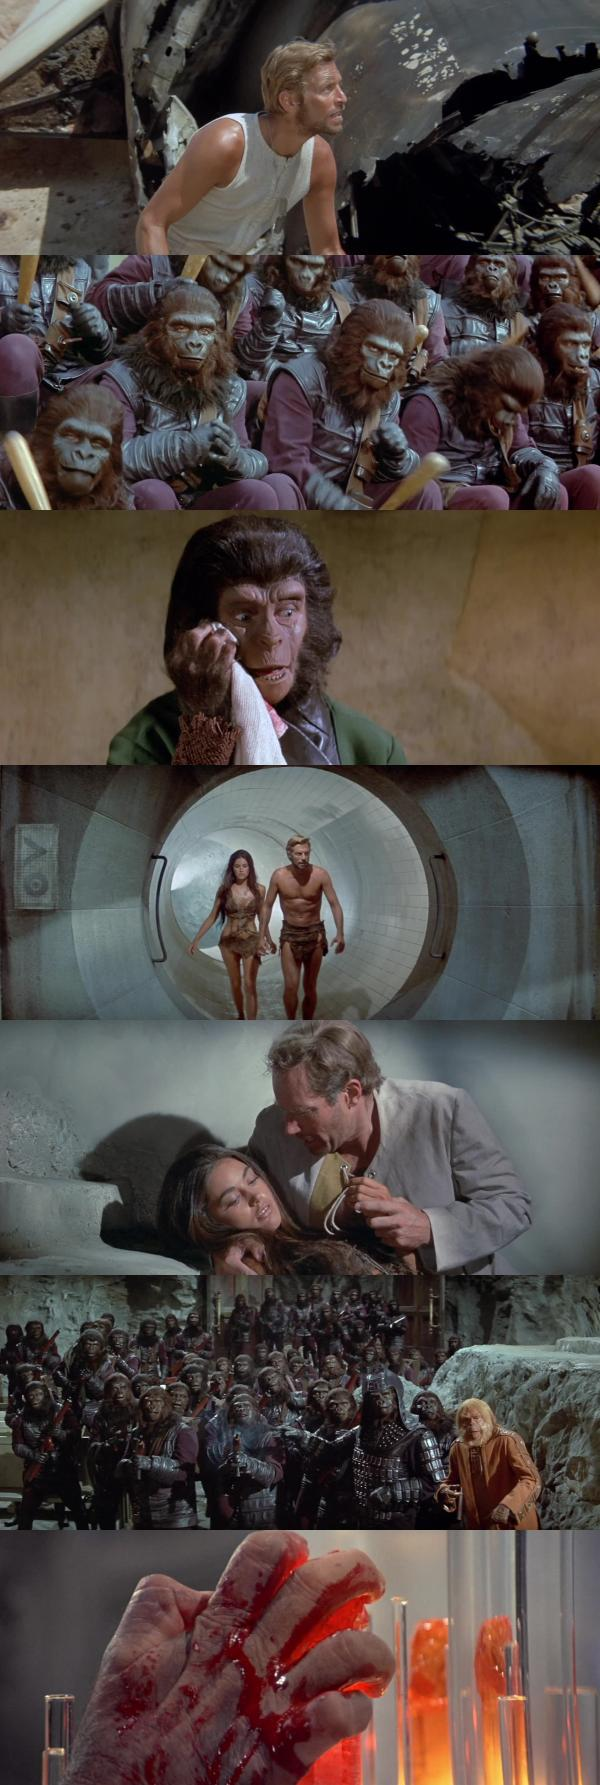 http://watershade.net/public/beneath-the-planet-of-the-apes.jpg